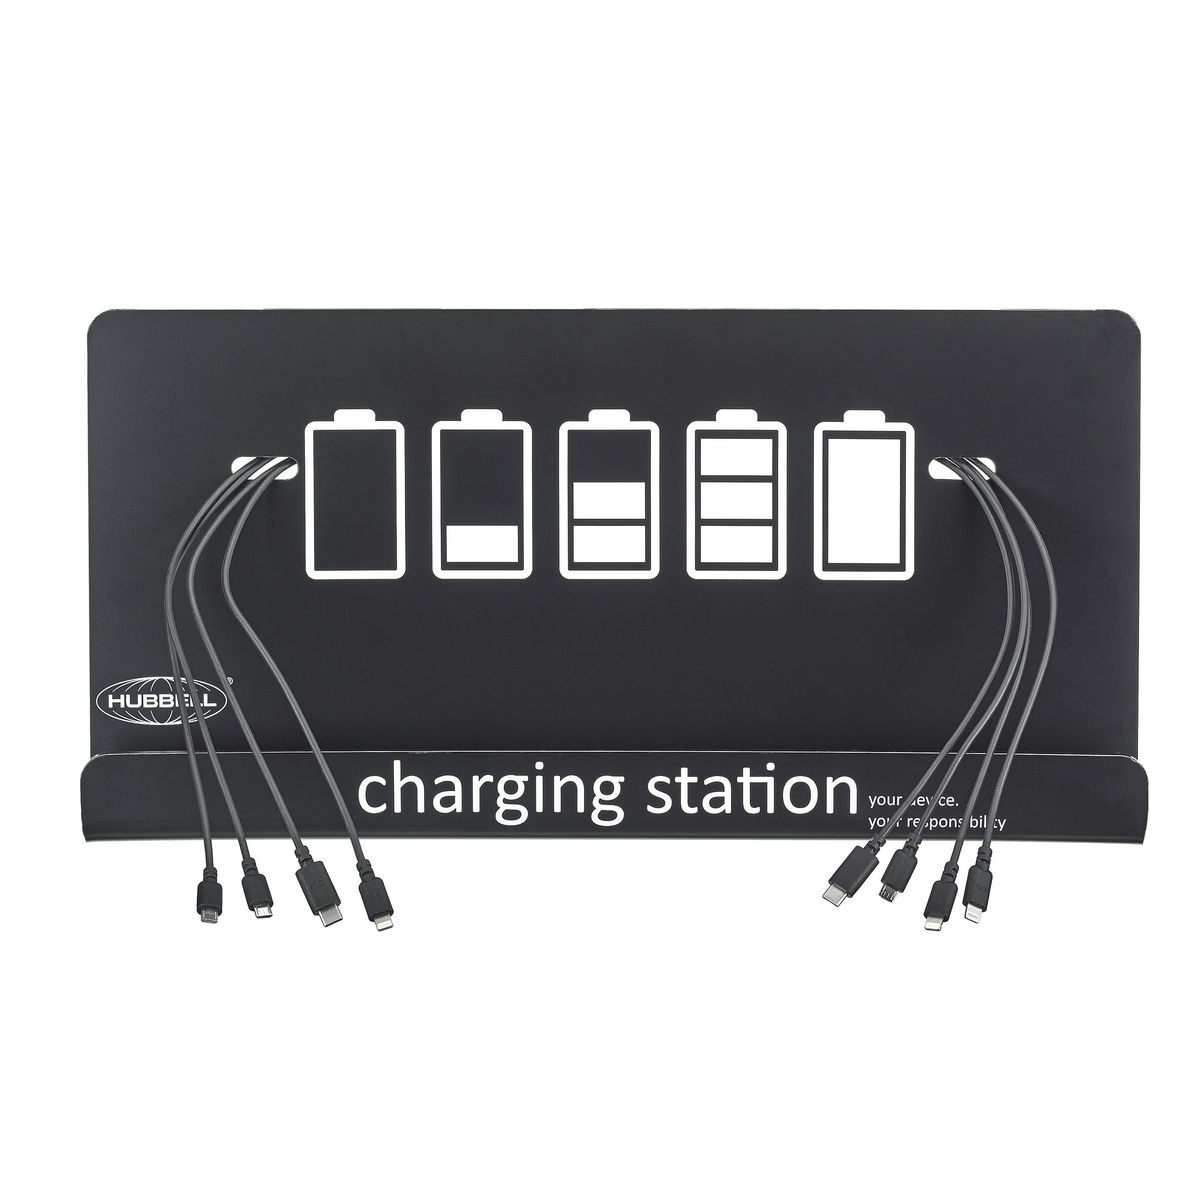 HUBBELL CHARGE STATION, WALL MOUNT